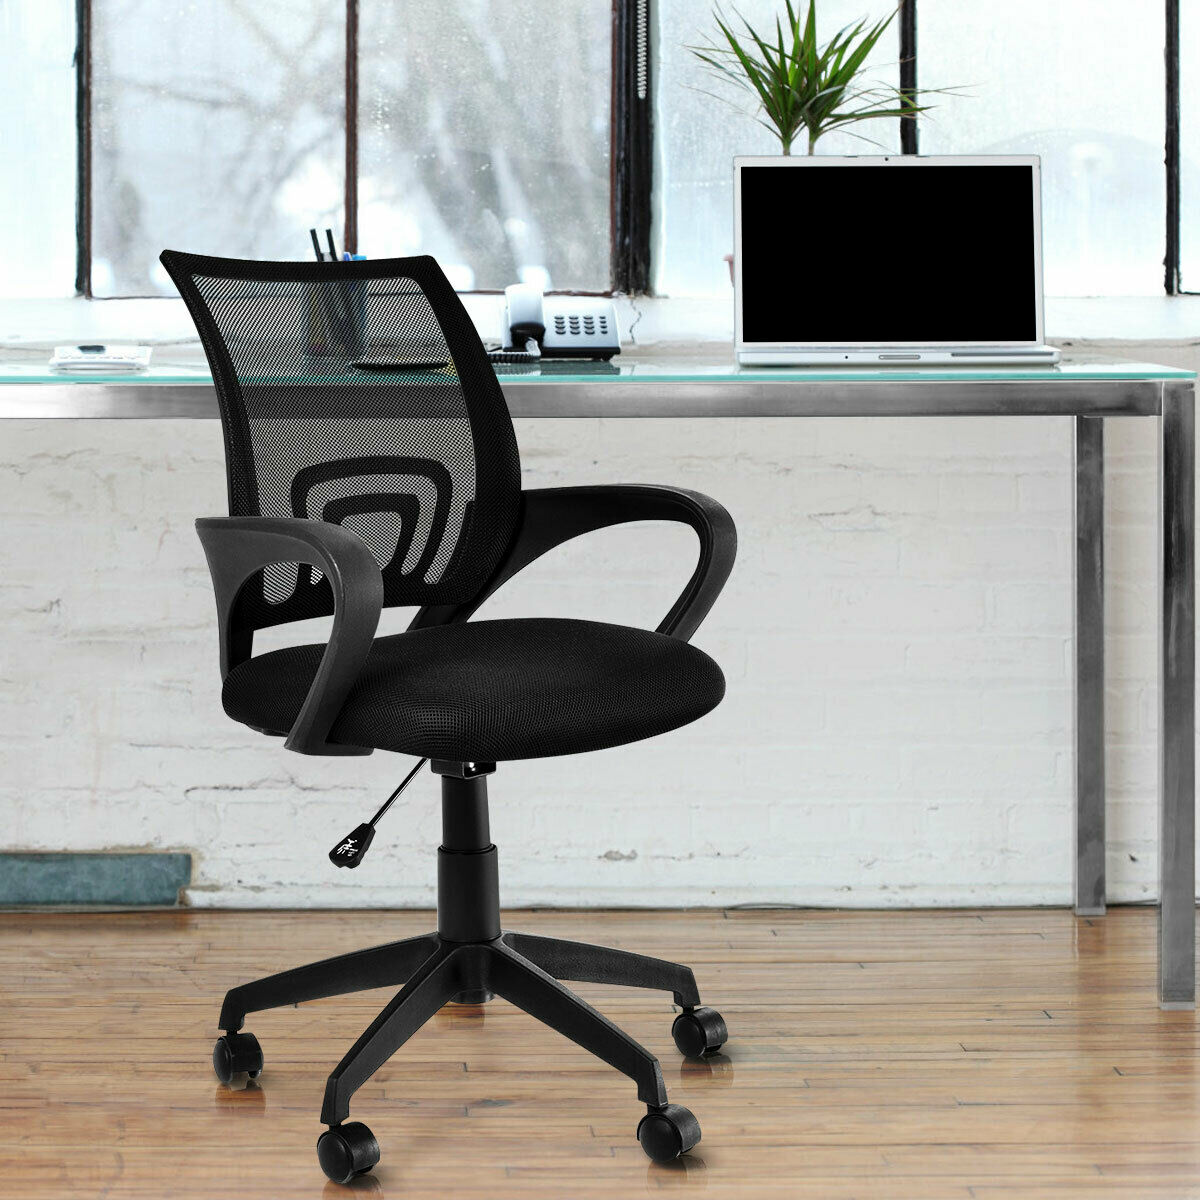 Costway Black Ergonomic Mid-back Mesh Computer Office Chair